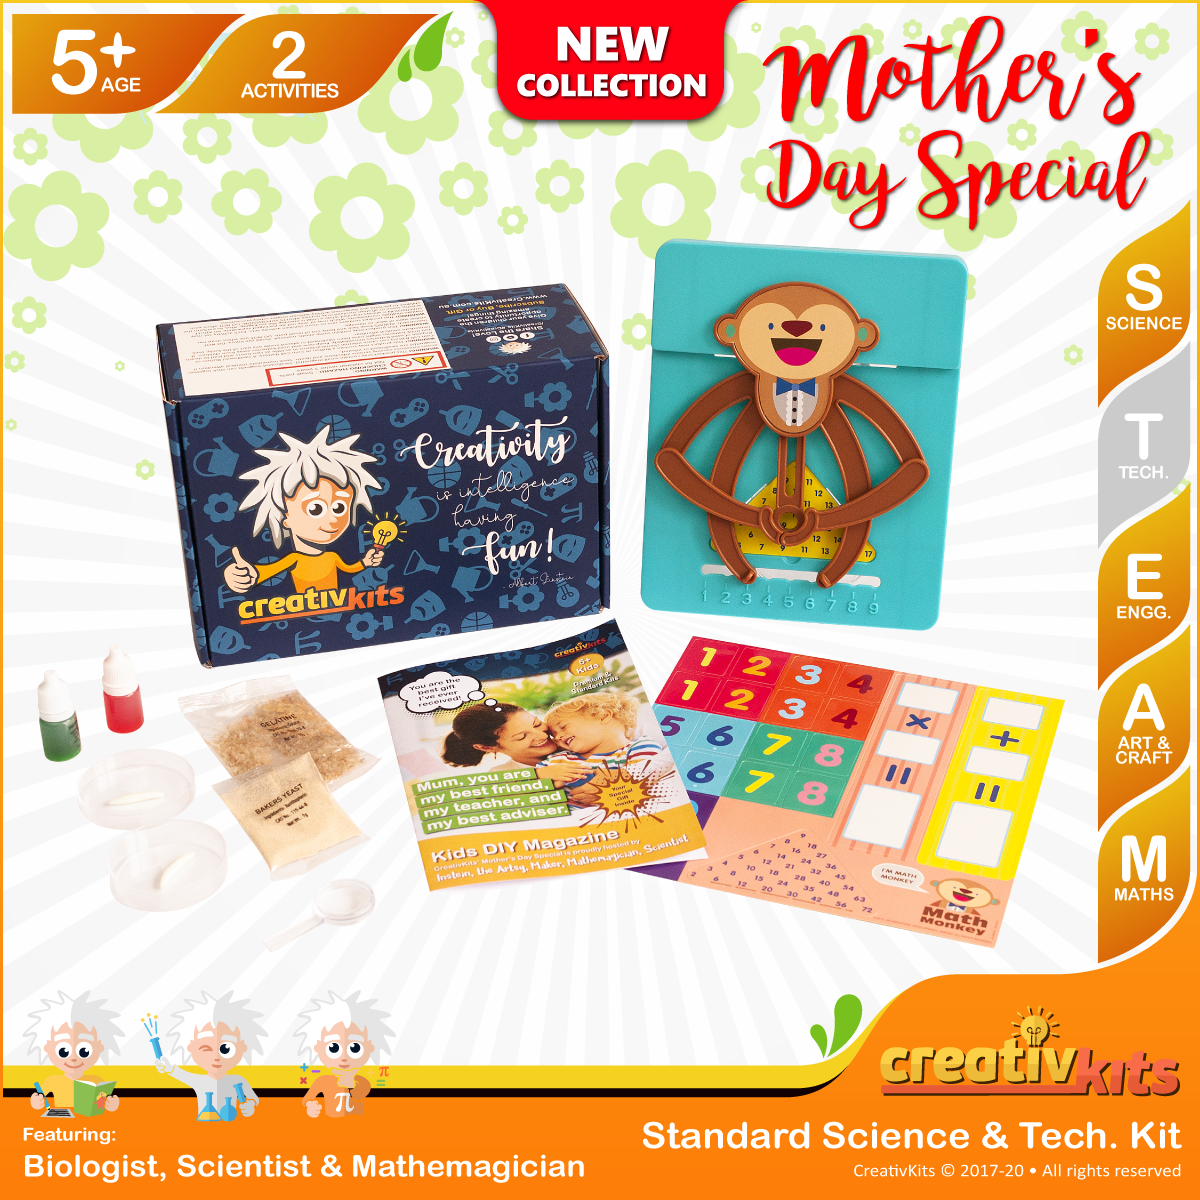 April Standard Science & Tech. Kit • Age 5 plus • Maths Monkey Fun & Be A Microbiologist